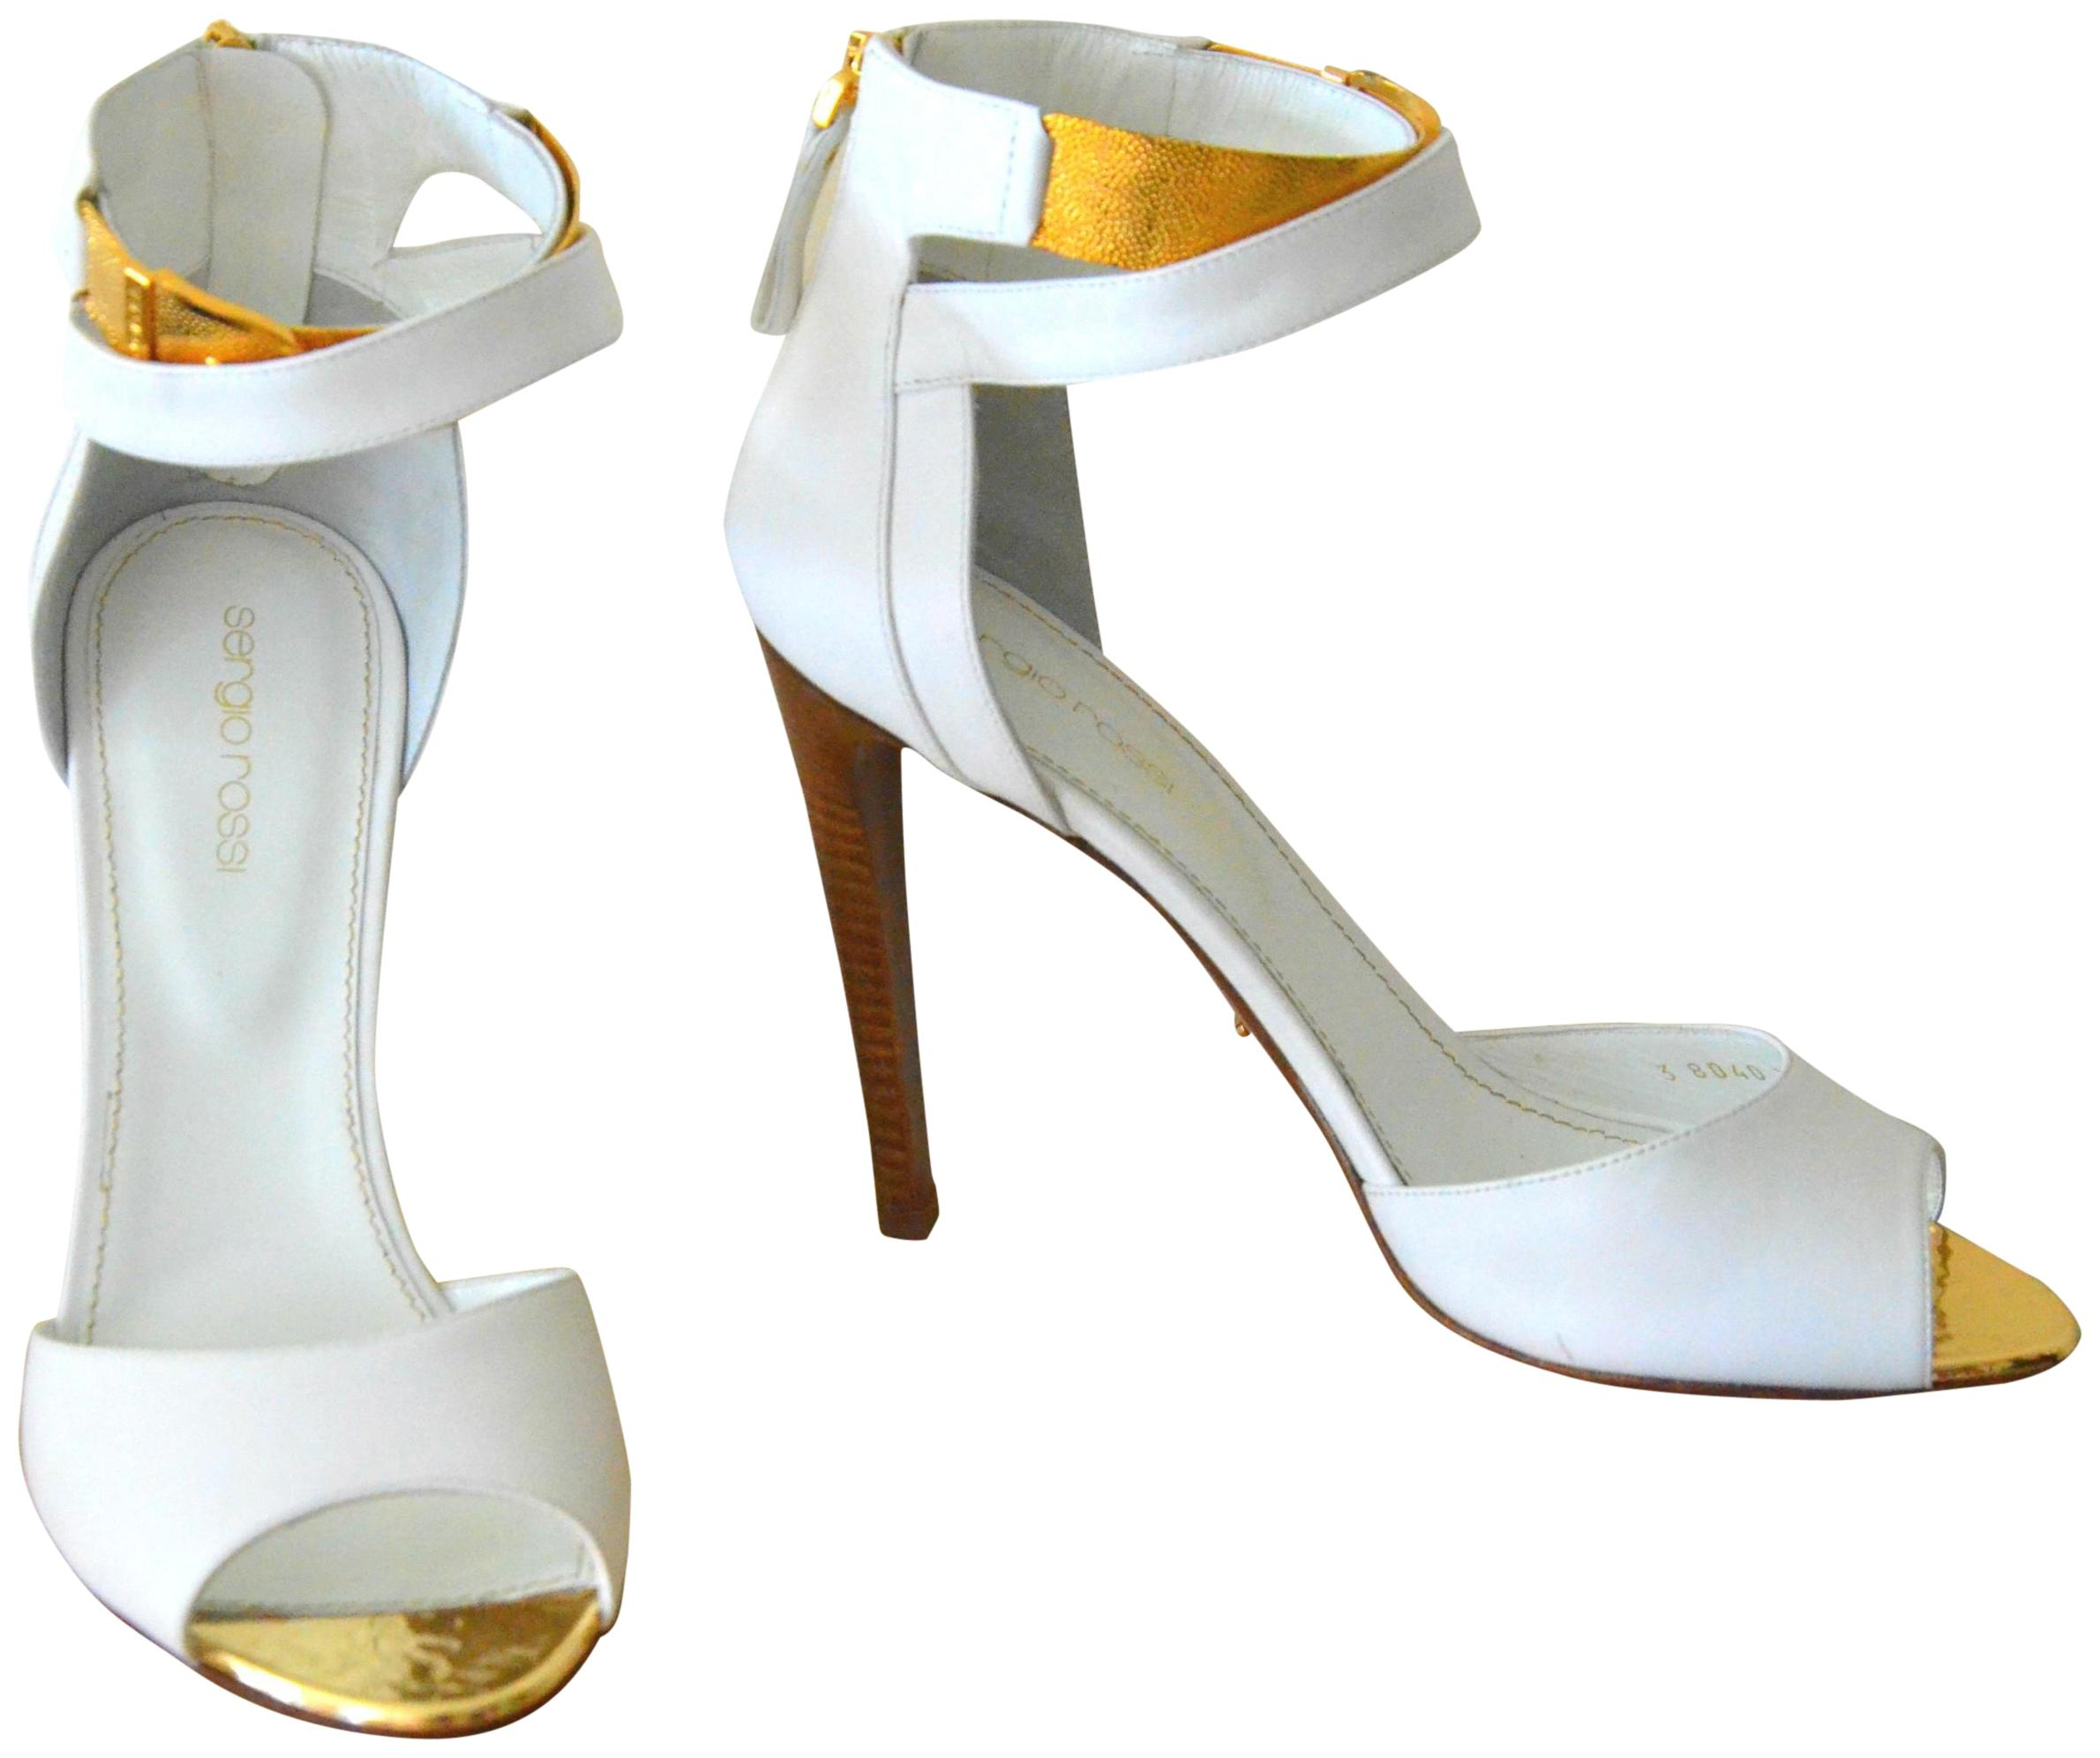 Sergio Rossi White Leather Gold Ankle Strap Evening 39.5/8-8.5 Sandals Size EU 39.5 (Approx. US 9.5) Regular (M, B)